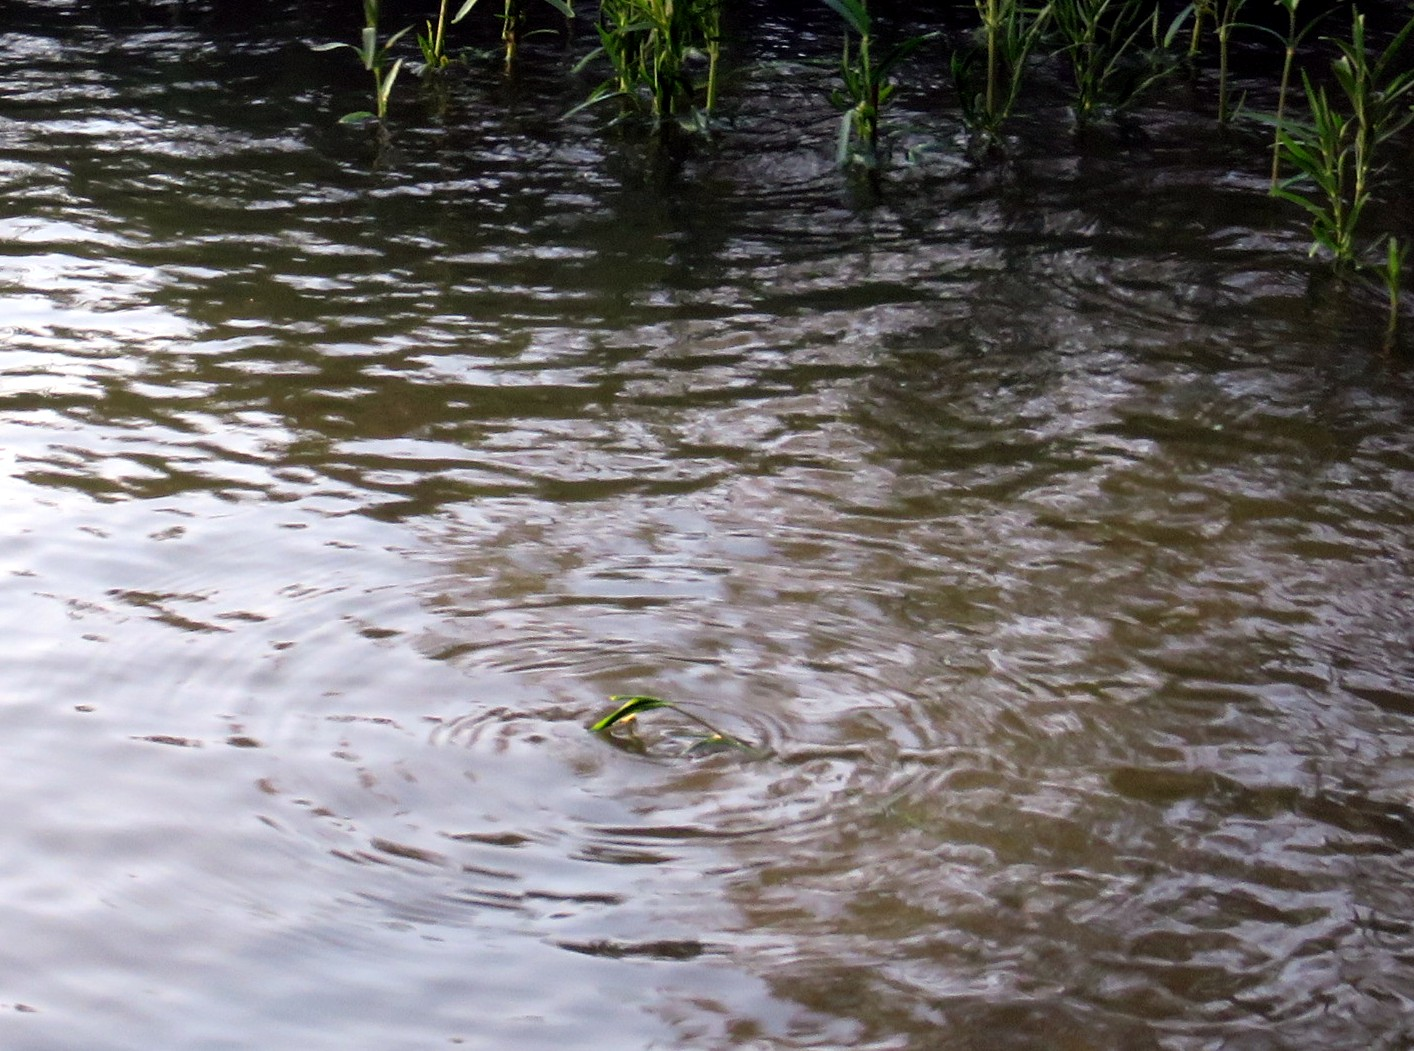 Ripples in Water headed to shore